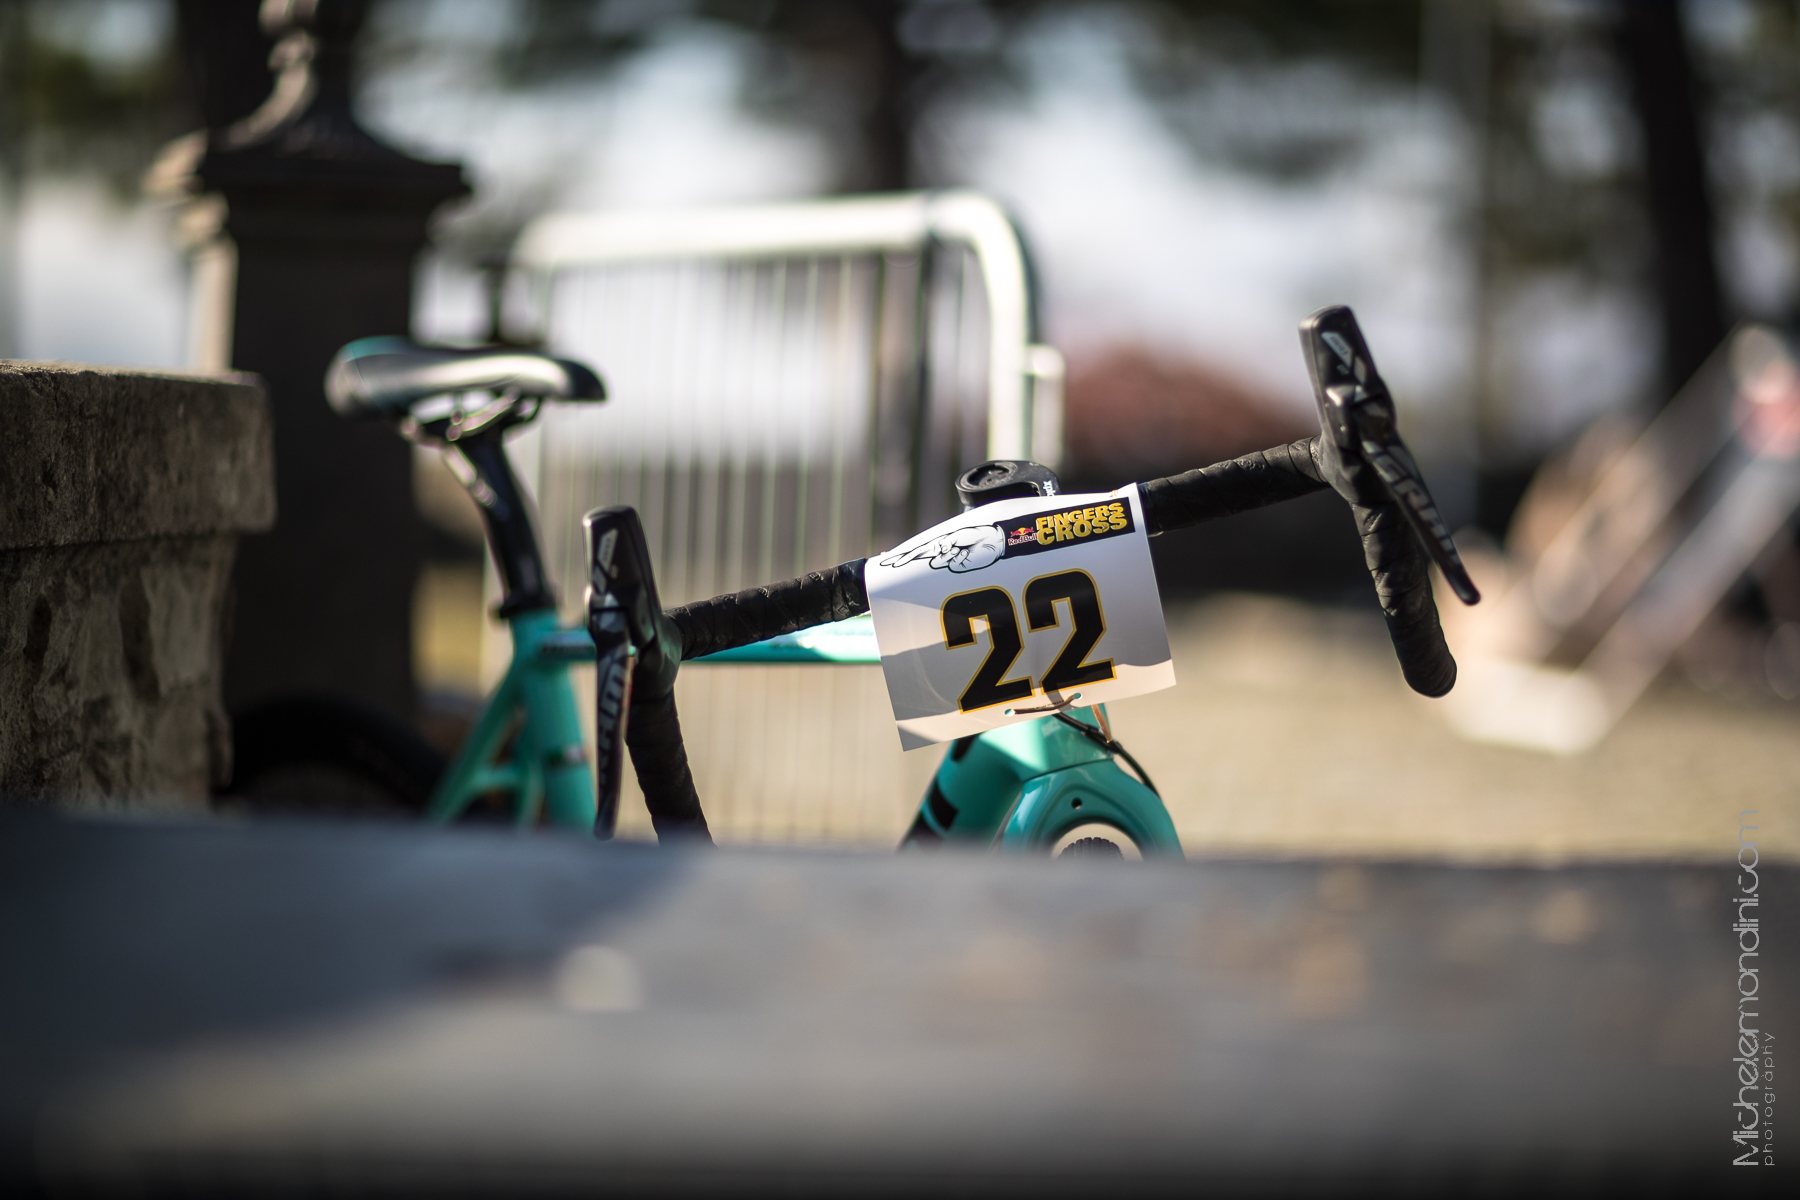 Prorider's bike is ready for Fingerscross first edition - Ph: Michele Mondini